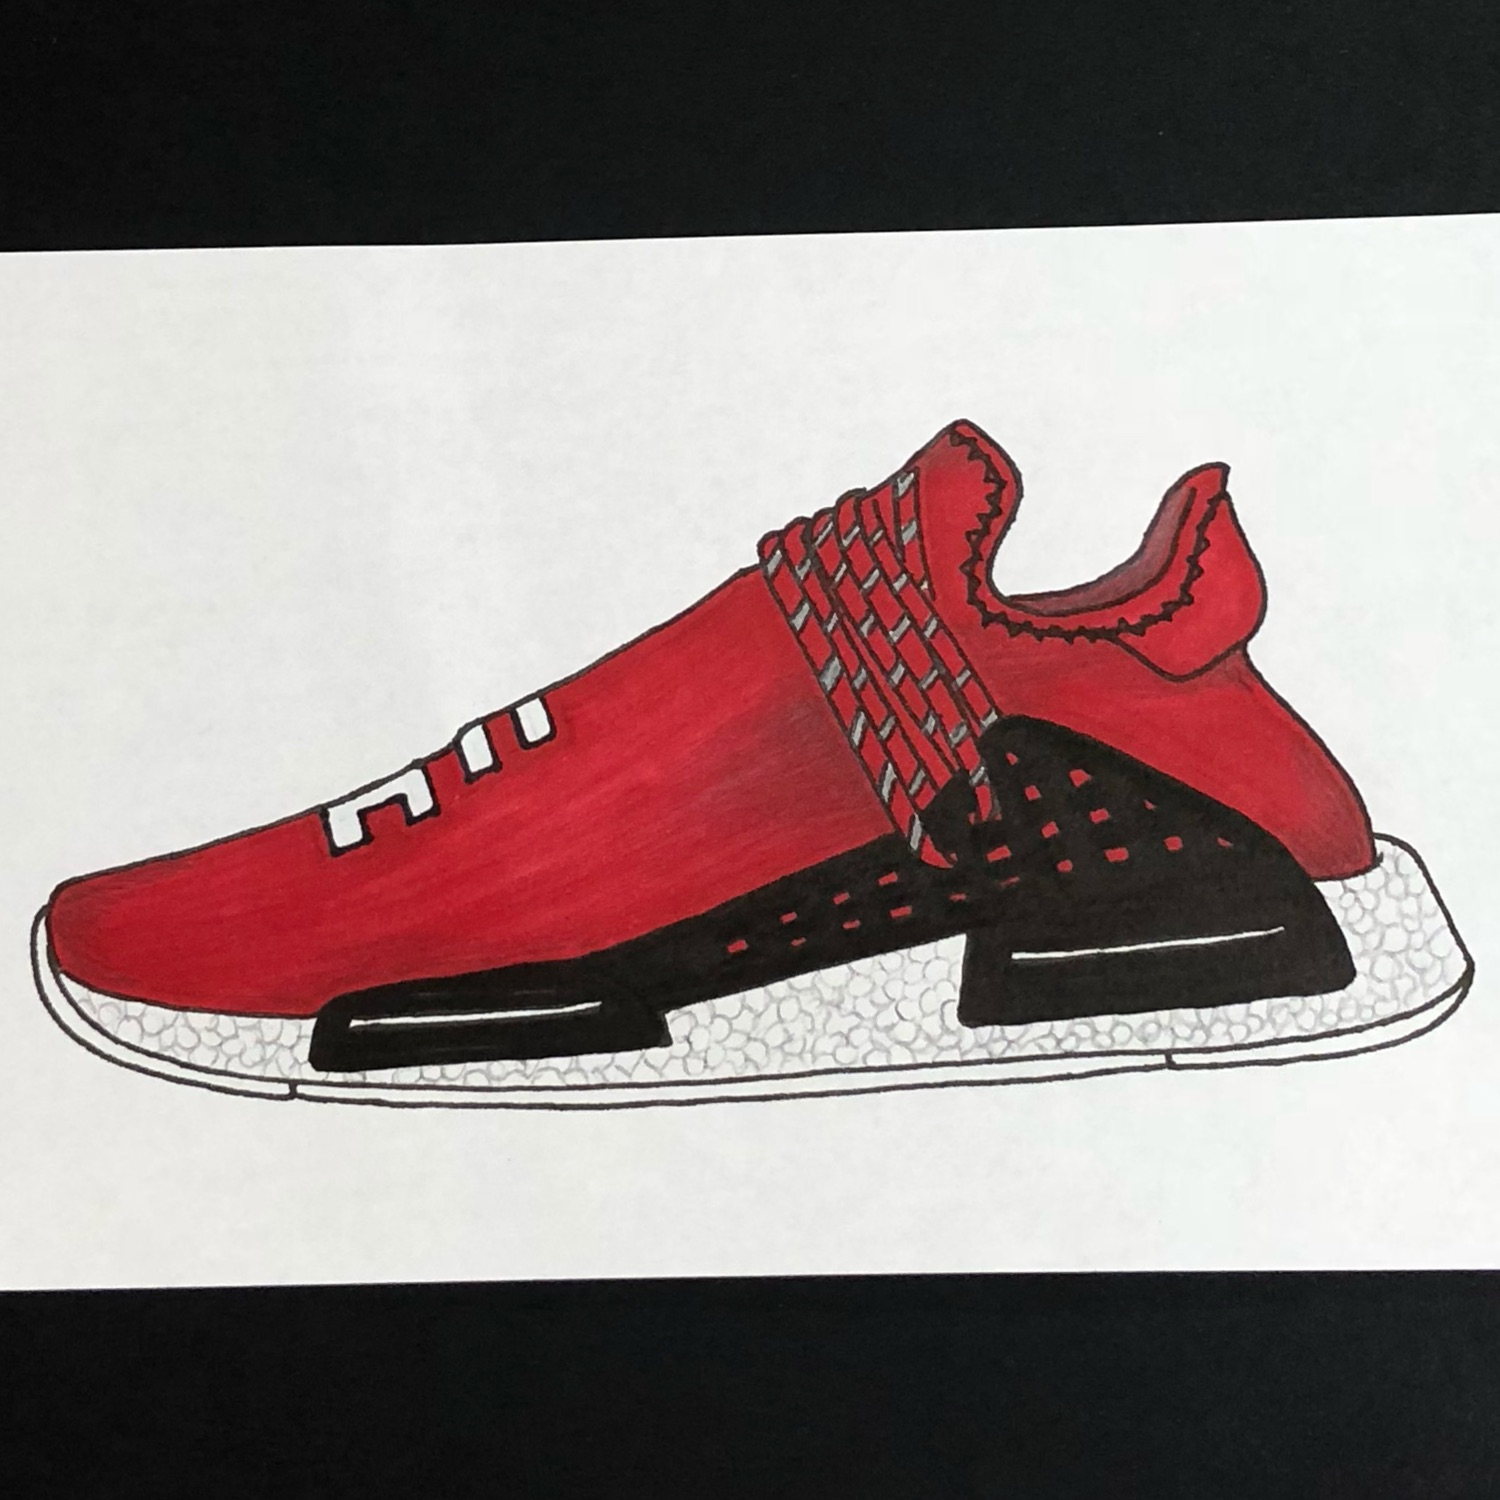 hot sale online 658d1 6c3e7 Adidas Pharrell Williams Human Race Nmd Boost Red